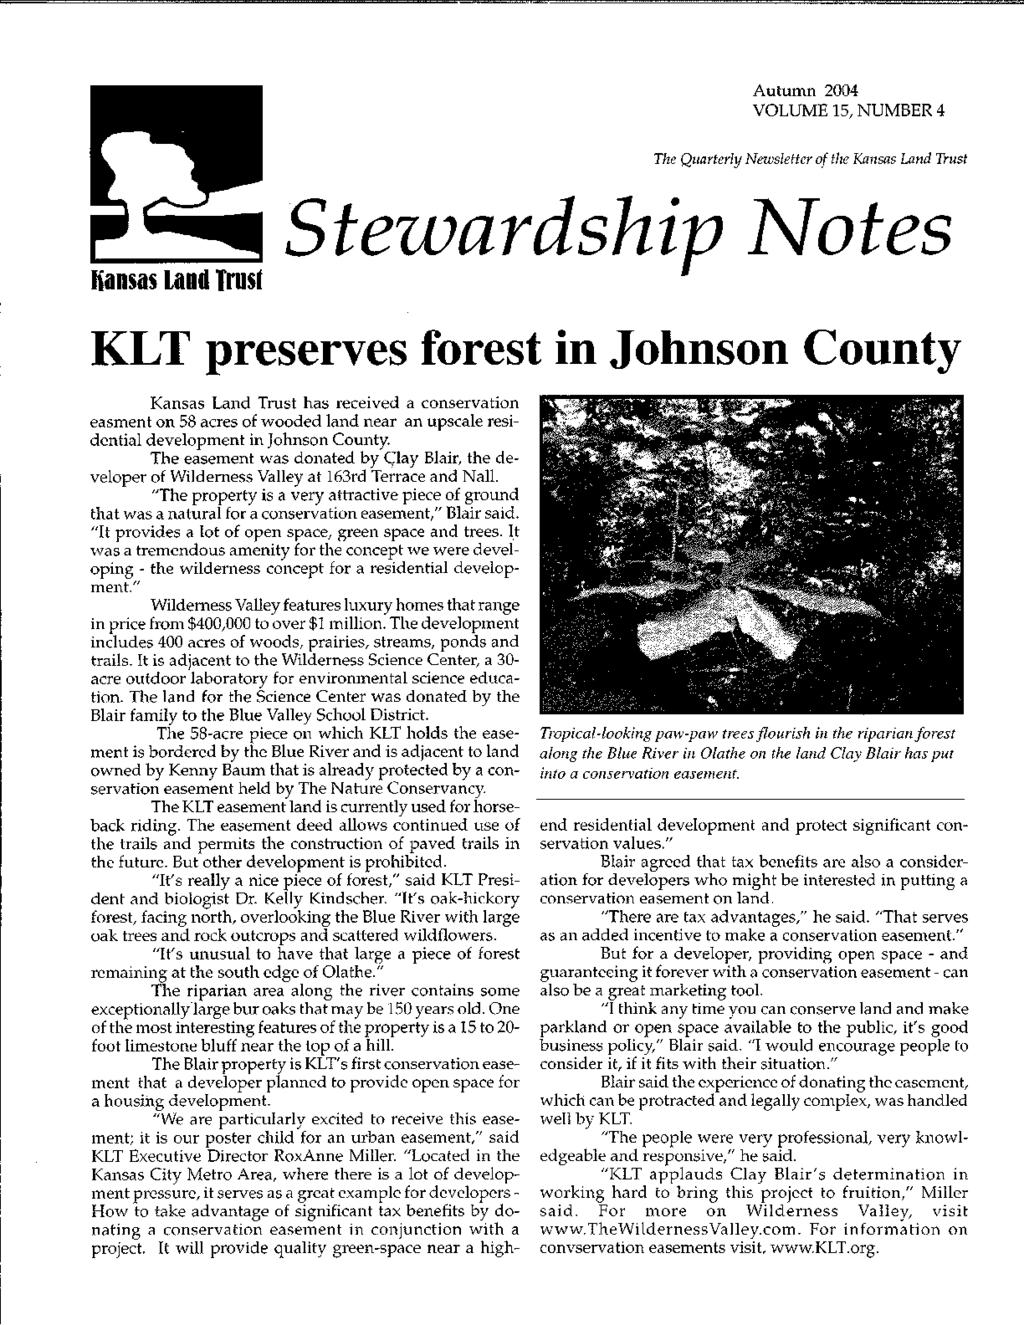 Autumn 2004 VOLUME 15, NUMBER 4 The Quarterly Newsletter of the Kansas Land Trust Hansas Land Trust Stewardship otes LT preserves forest in Johnson County Kansas Land Trust has received a